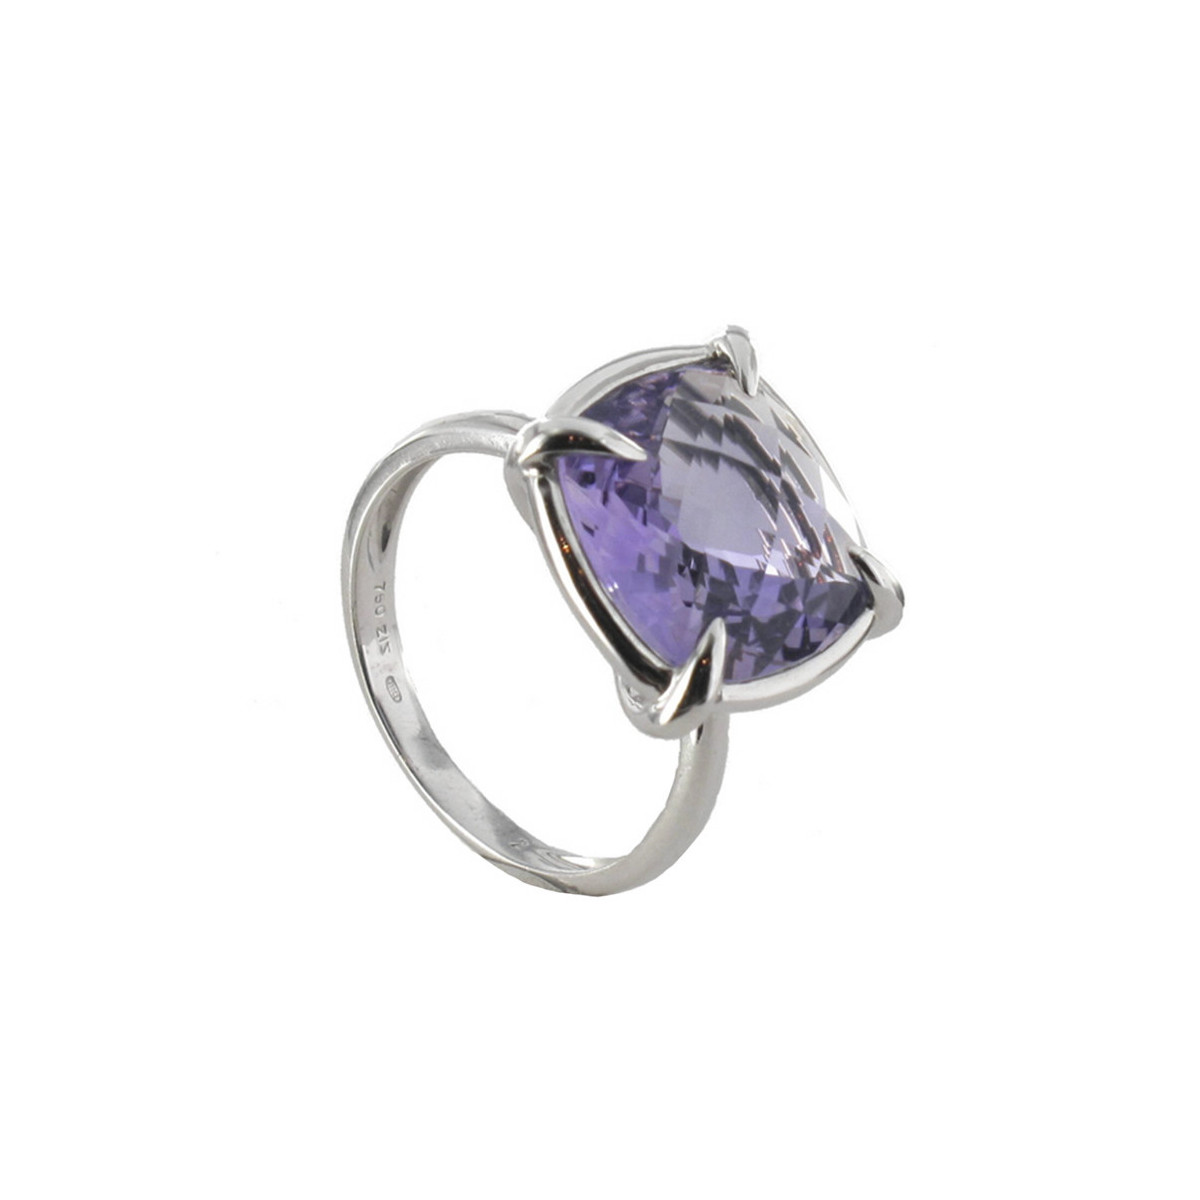 POLISHED GOLD RING WITH AMETHYST